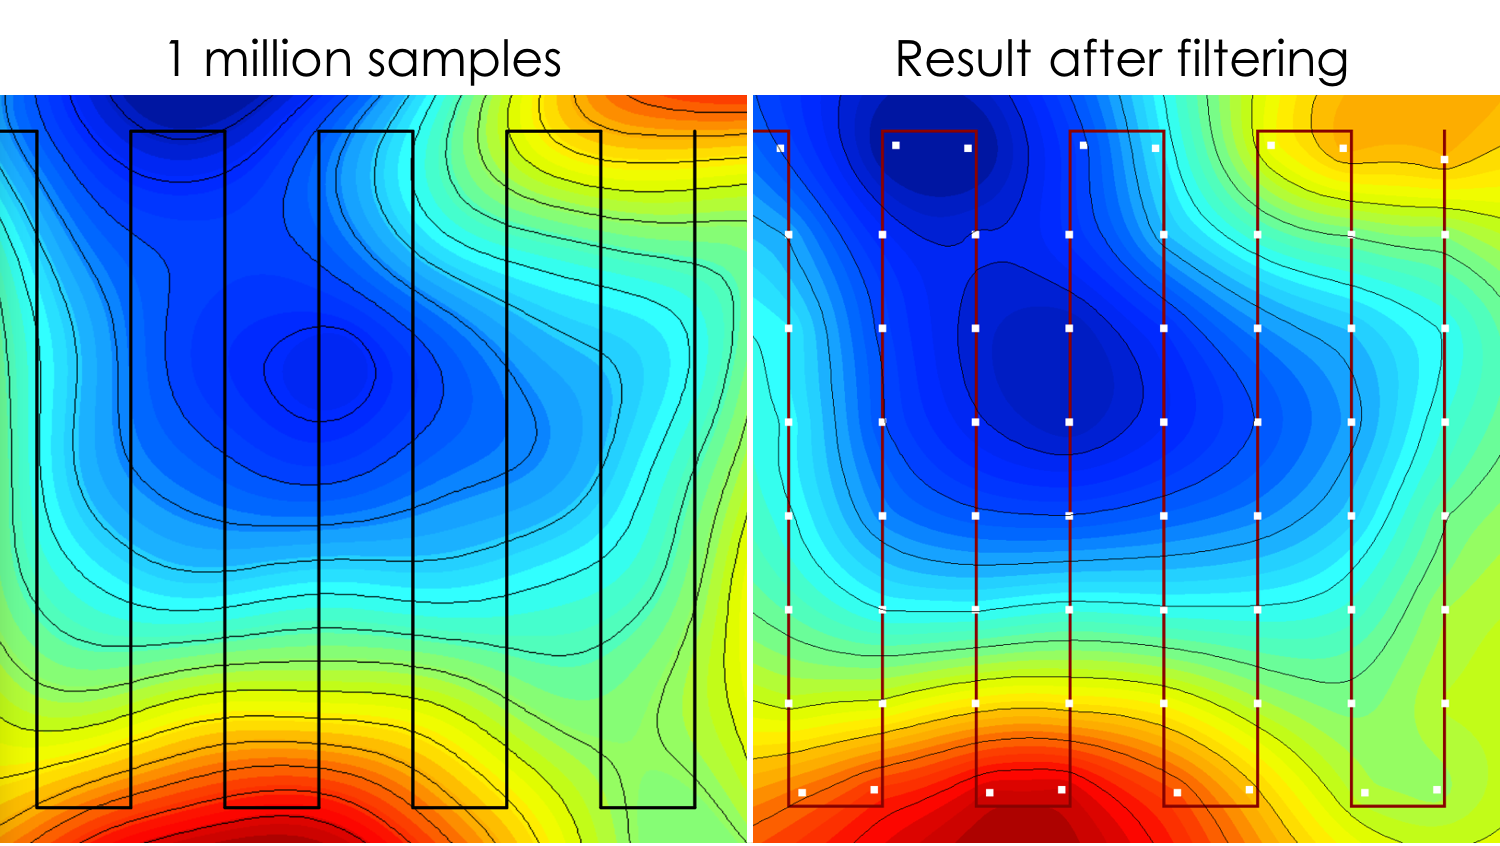 Left:  The actual data model, where a sensor has sampled 1 million samples along a given path.   Right:  Resulting image after processing of 1 million samples. Notice how precise the model is outside of where there is no data.